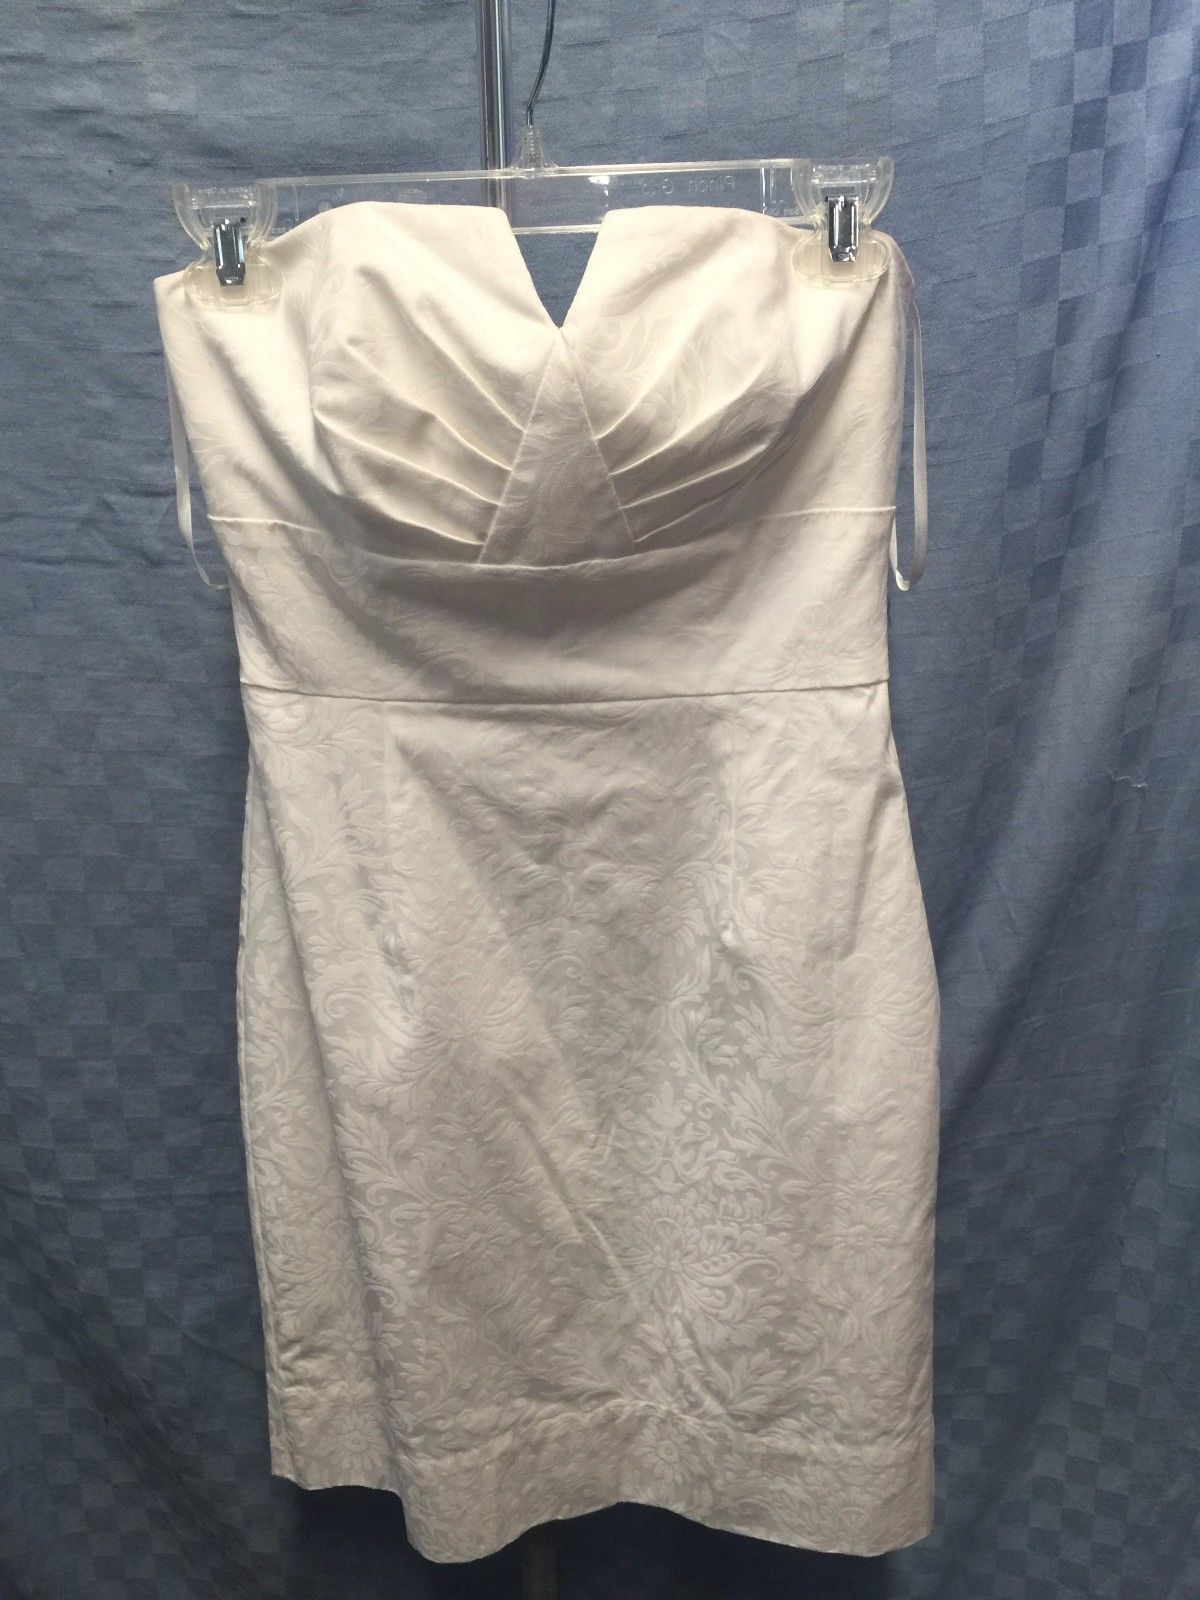 Awesome amazing white house black market strapless bustier evening